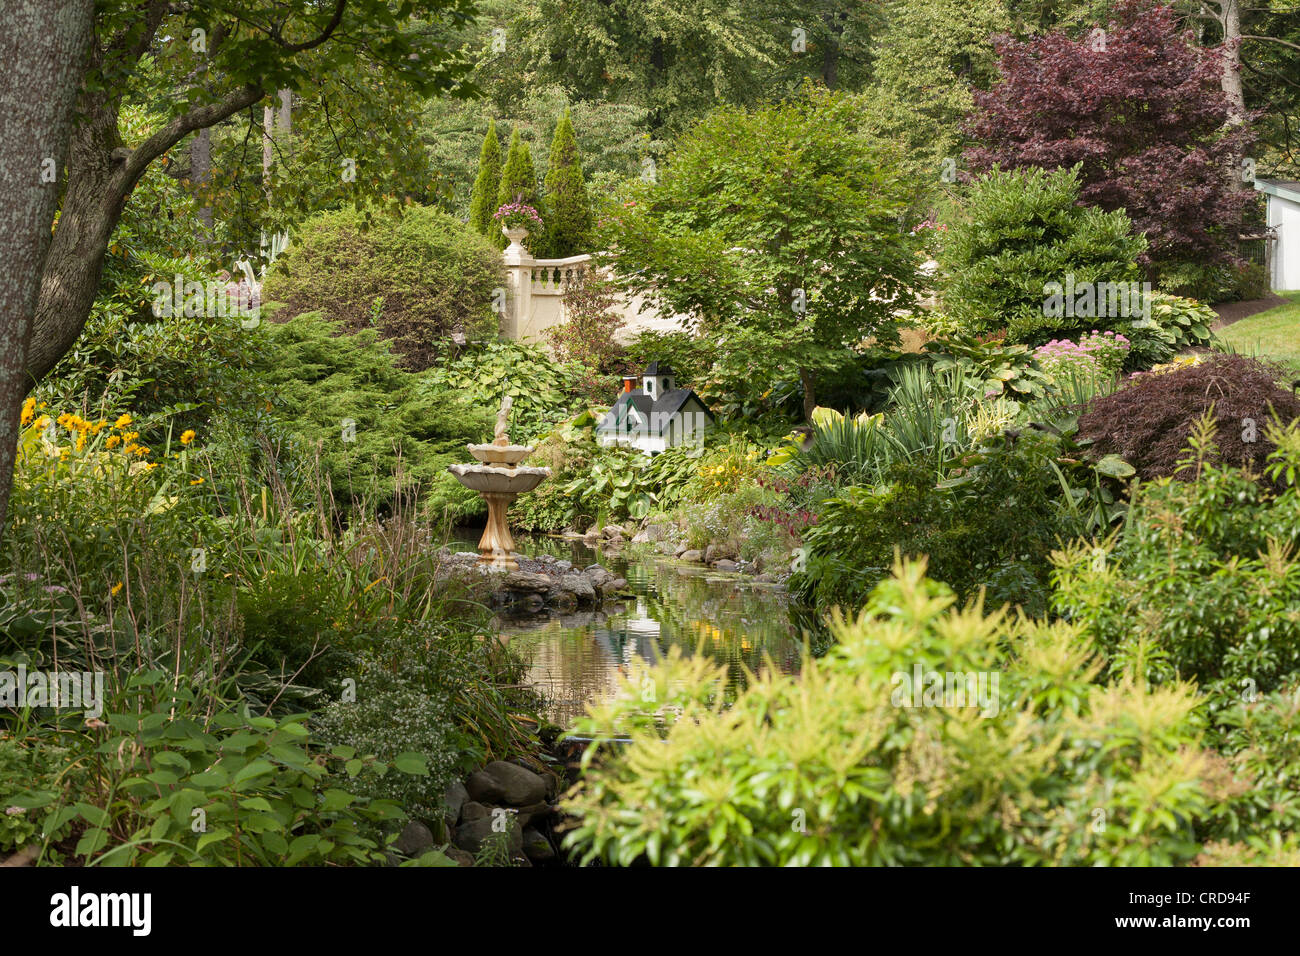 Lush Spring vegetation at the Halifax Public Gardens. A fountain and a mini house feature - Stock Image